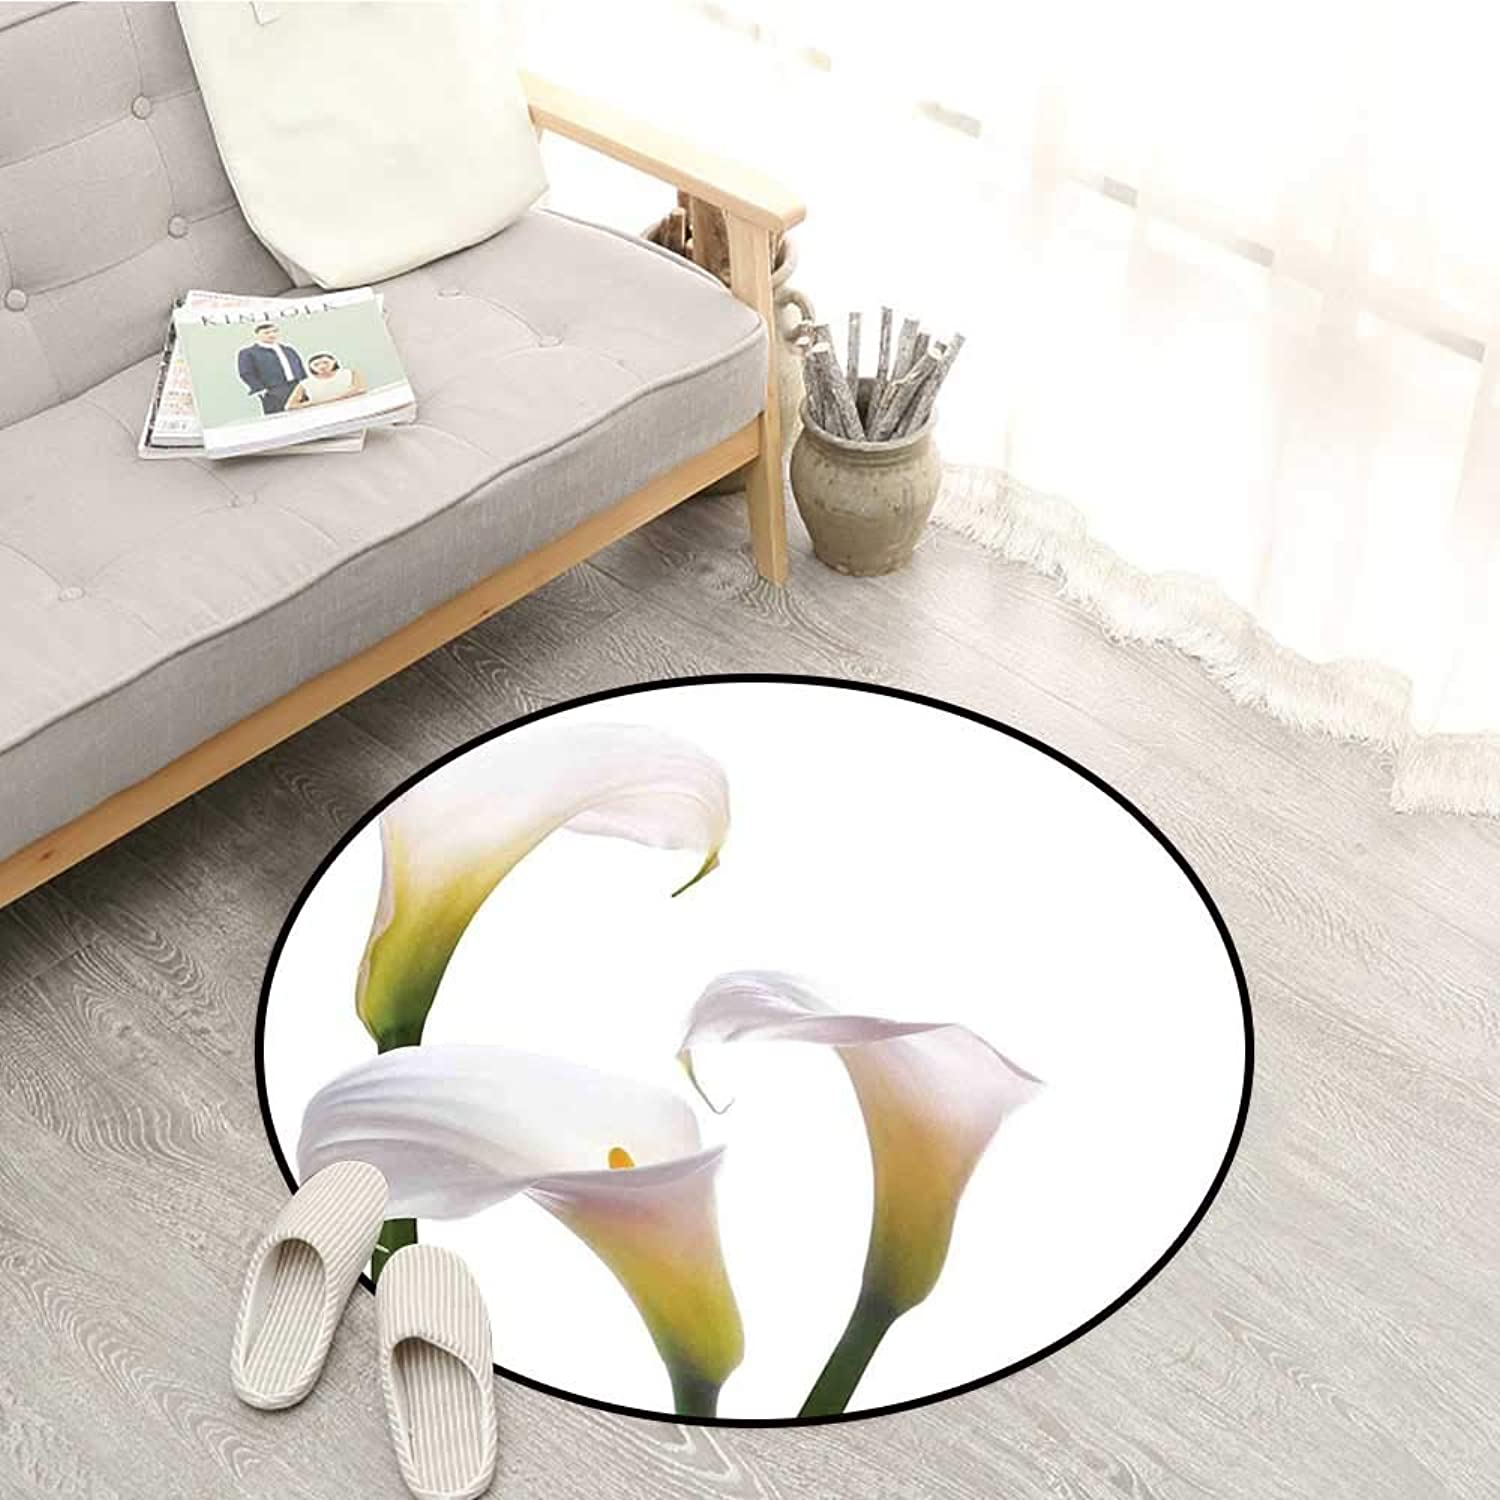 Flower Non-Slip Rugs purplec colord Bouquet Pure Calming Relaxing Modern Floral Design Photo Image Sofa Coffee Table Mat 4'11  White and Green